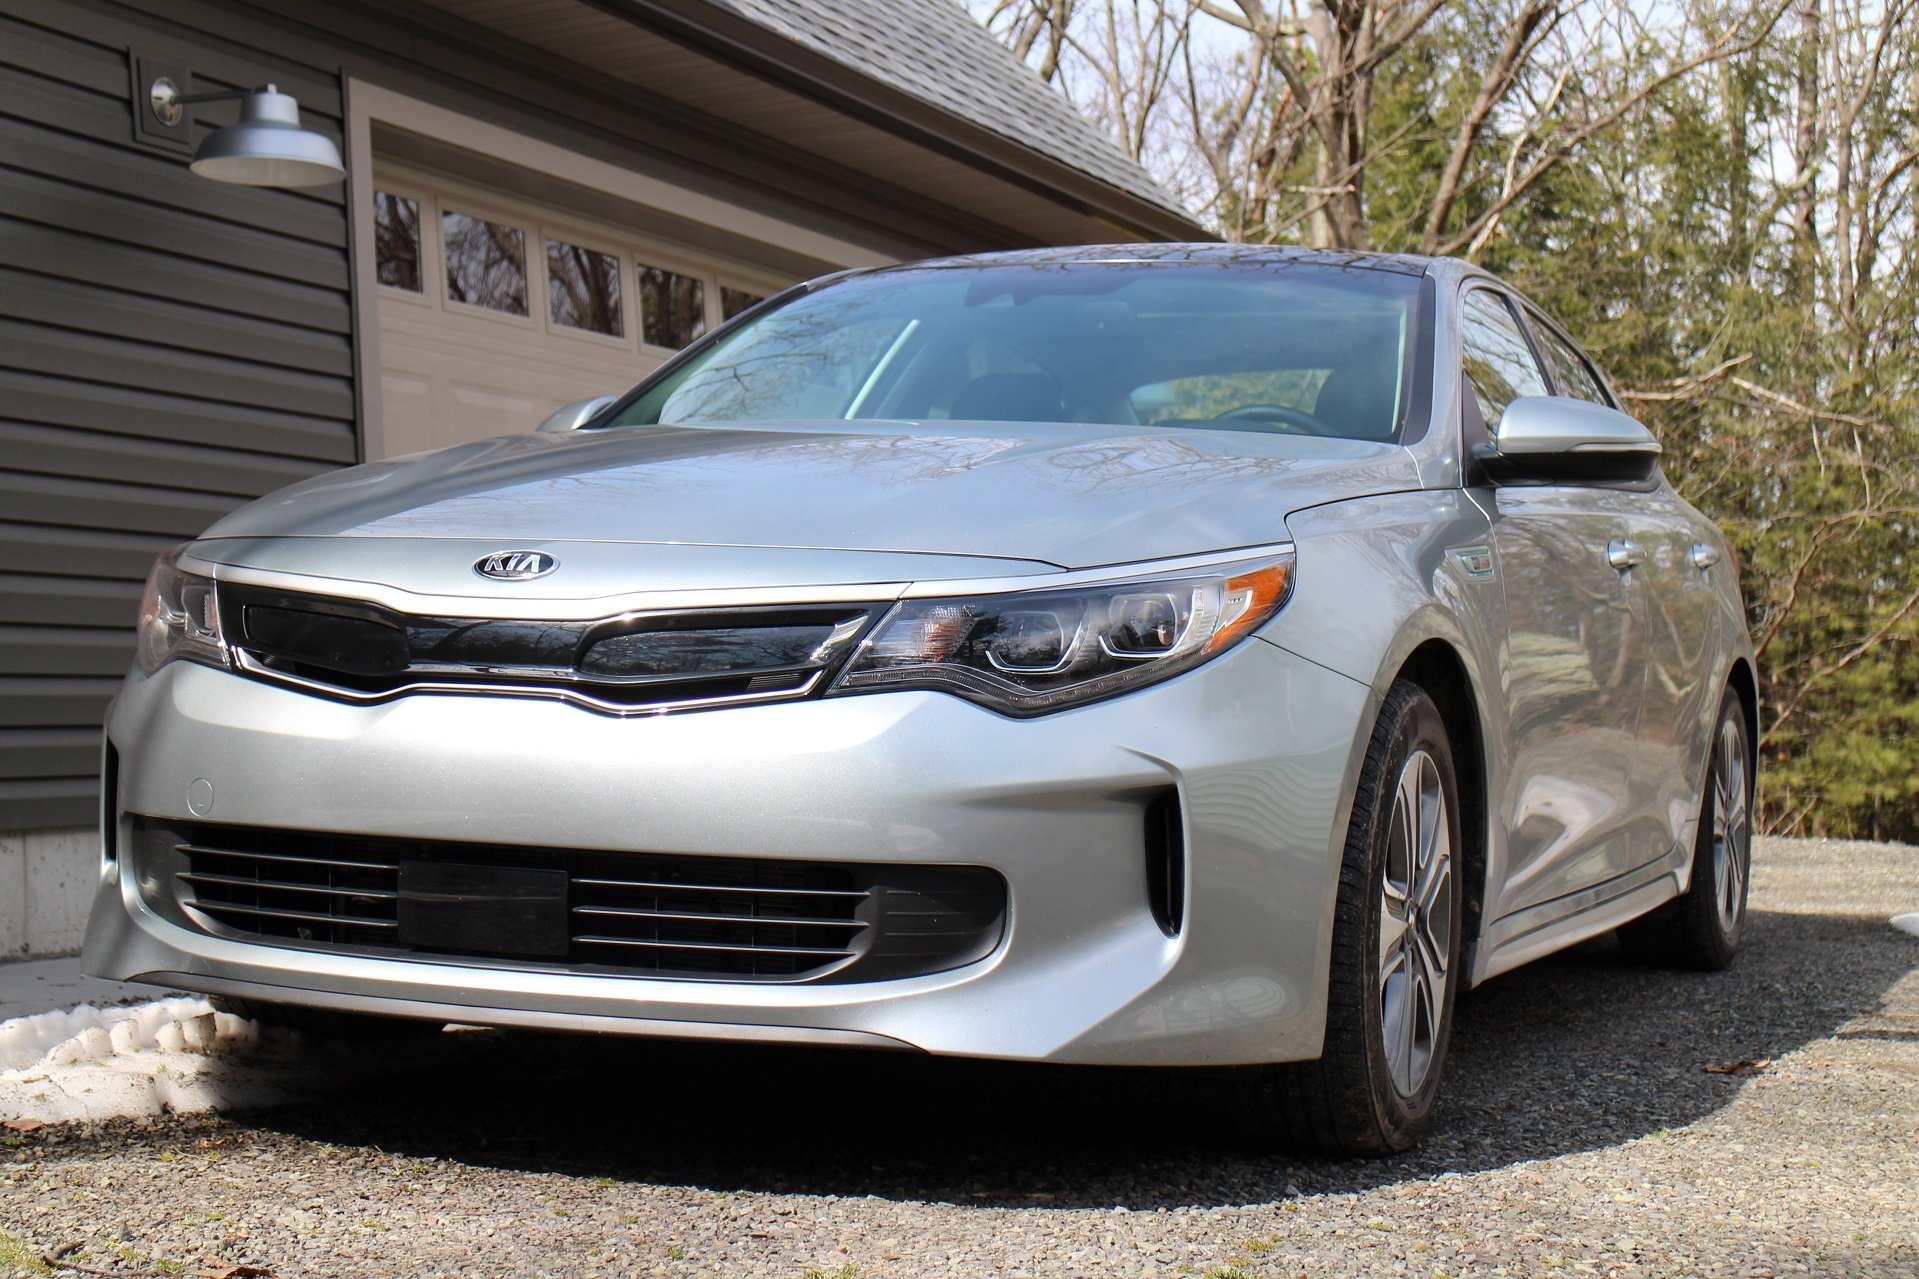 2017 Kia Optima Hybrid Gas Mileage Review Of Mid Size Sedan